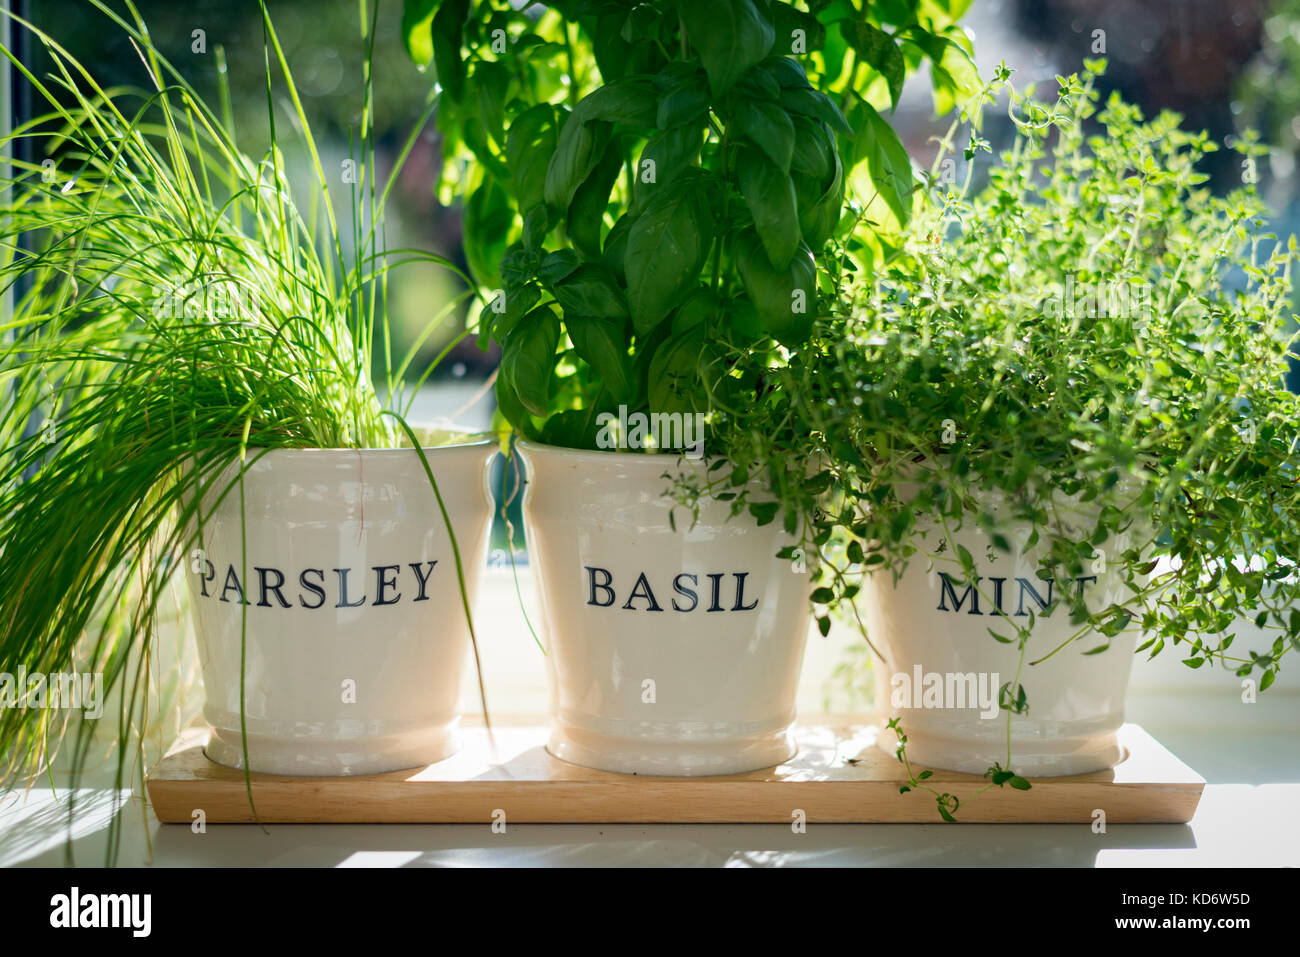 parsley basil and mint herbs growing in plant pots on a kitchen stock photo 163035305 alamy. Black Bedroom Furniture Sets. Home Design Ideas